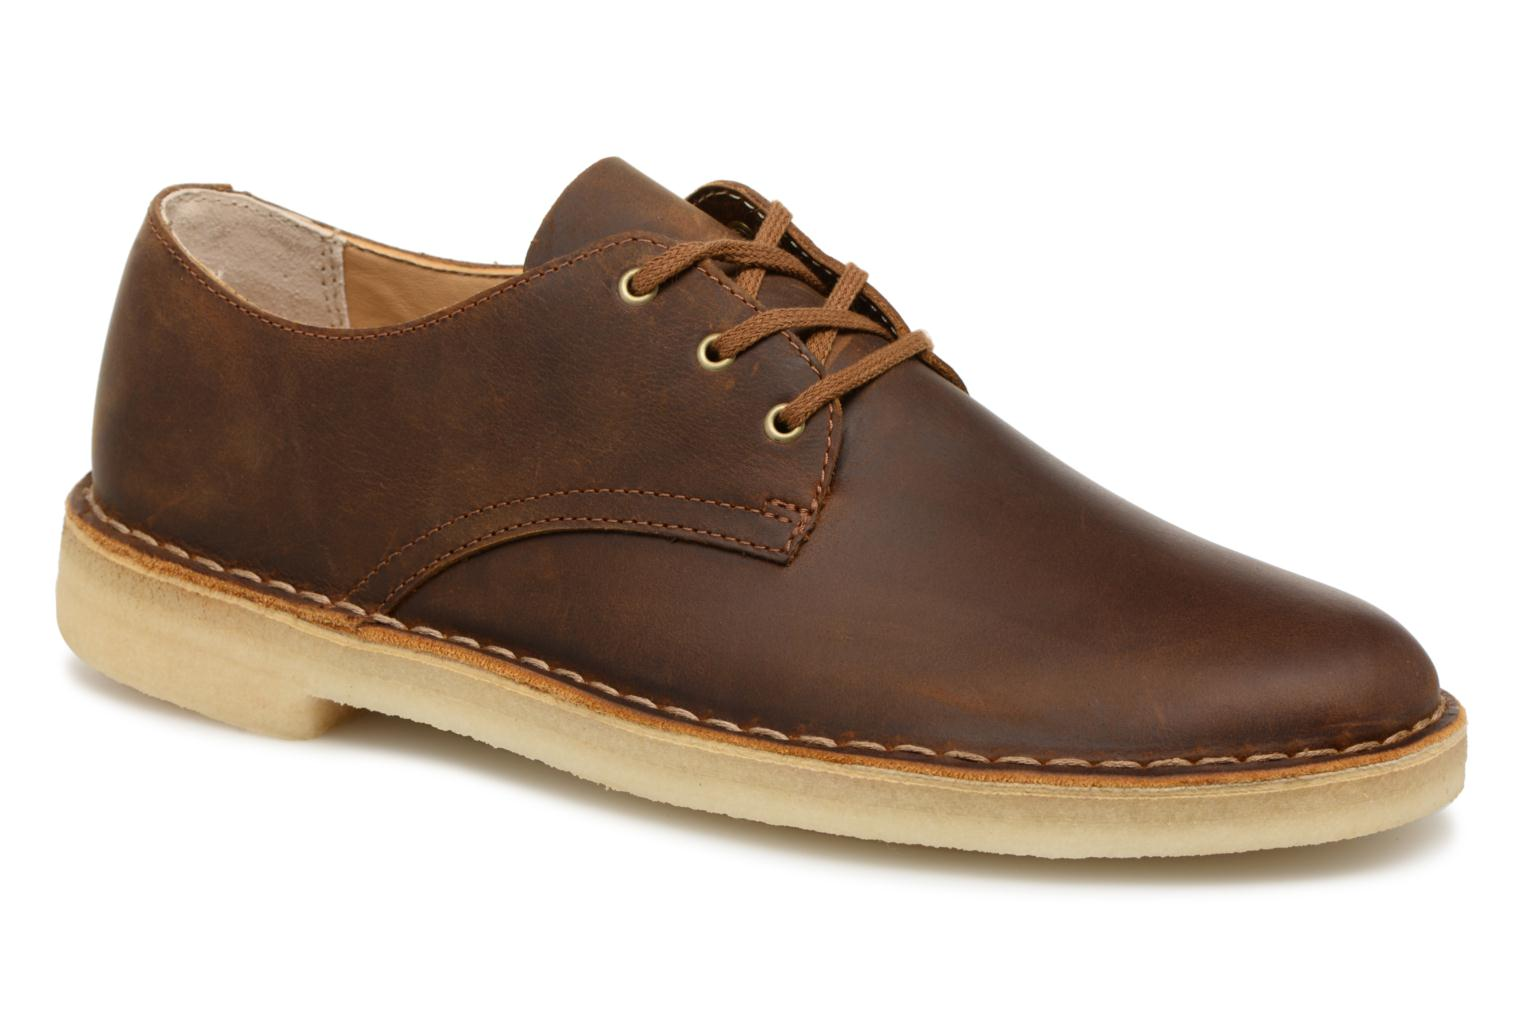 Clarks Originals DESERT - Chaussures à lacets marron vemyxz